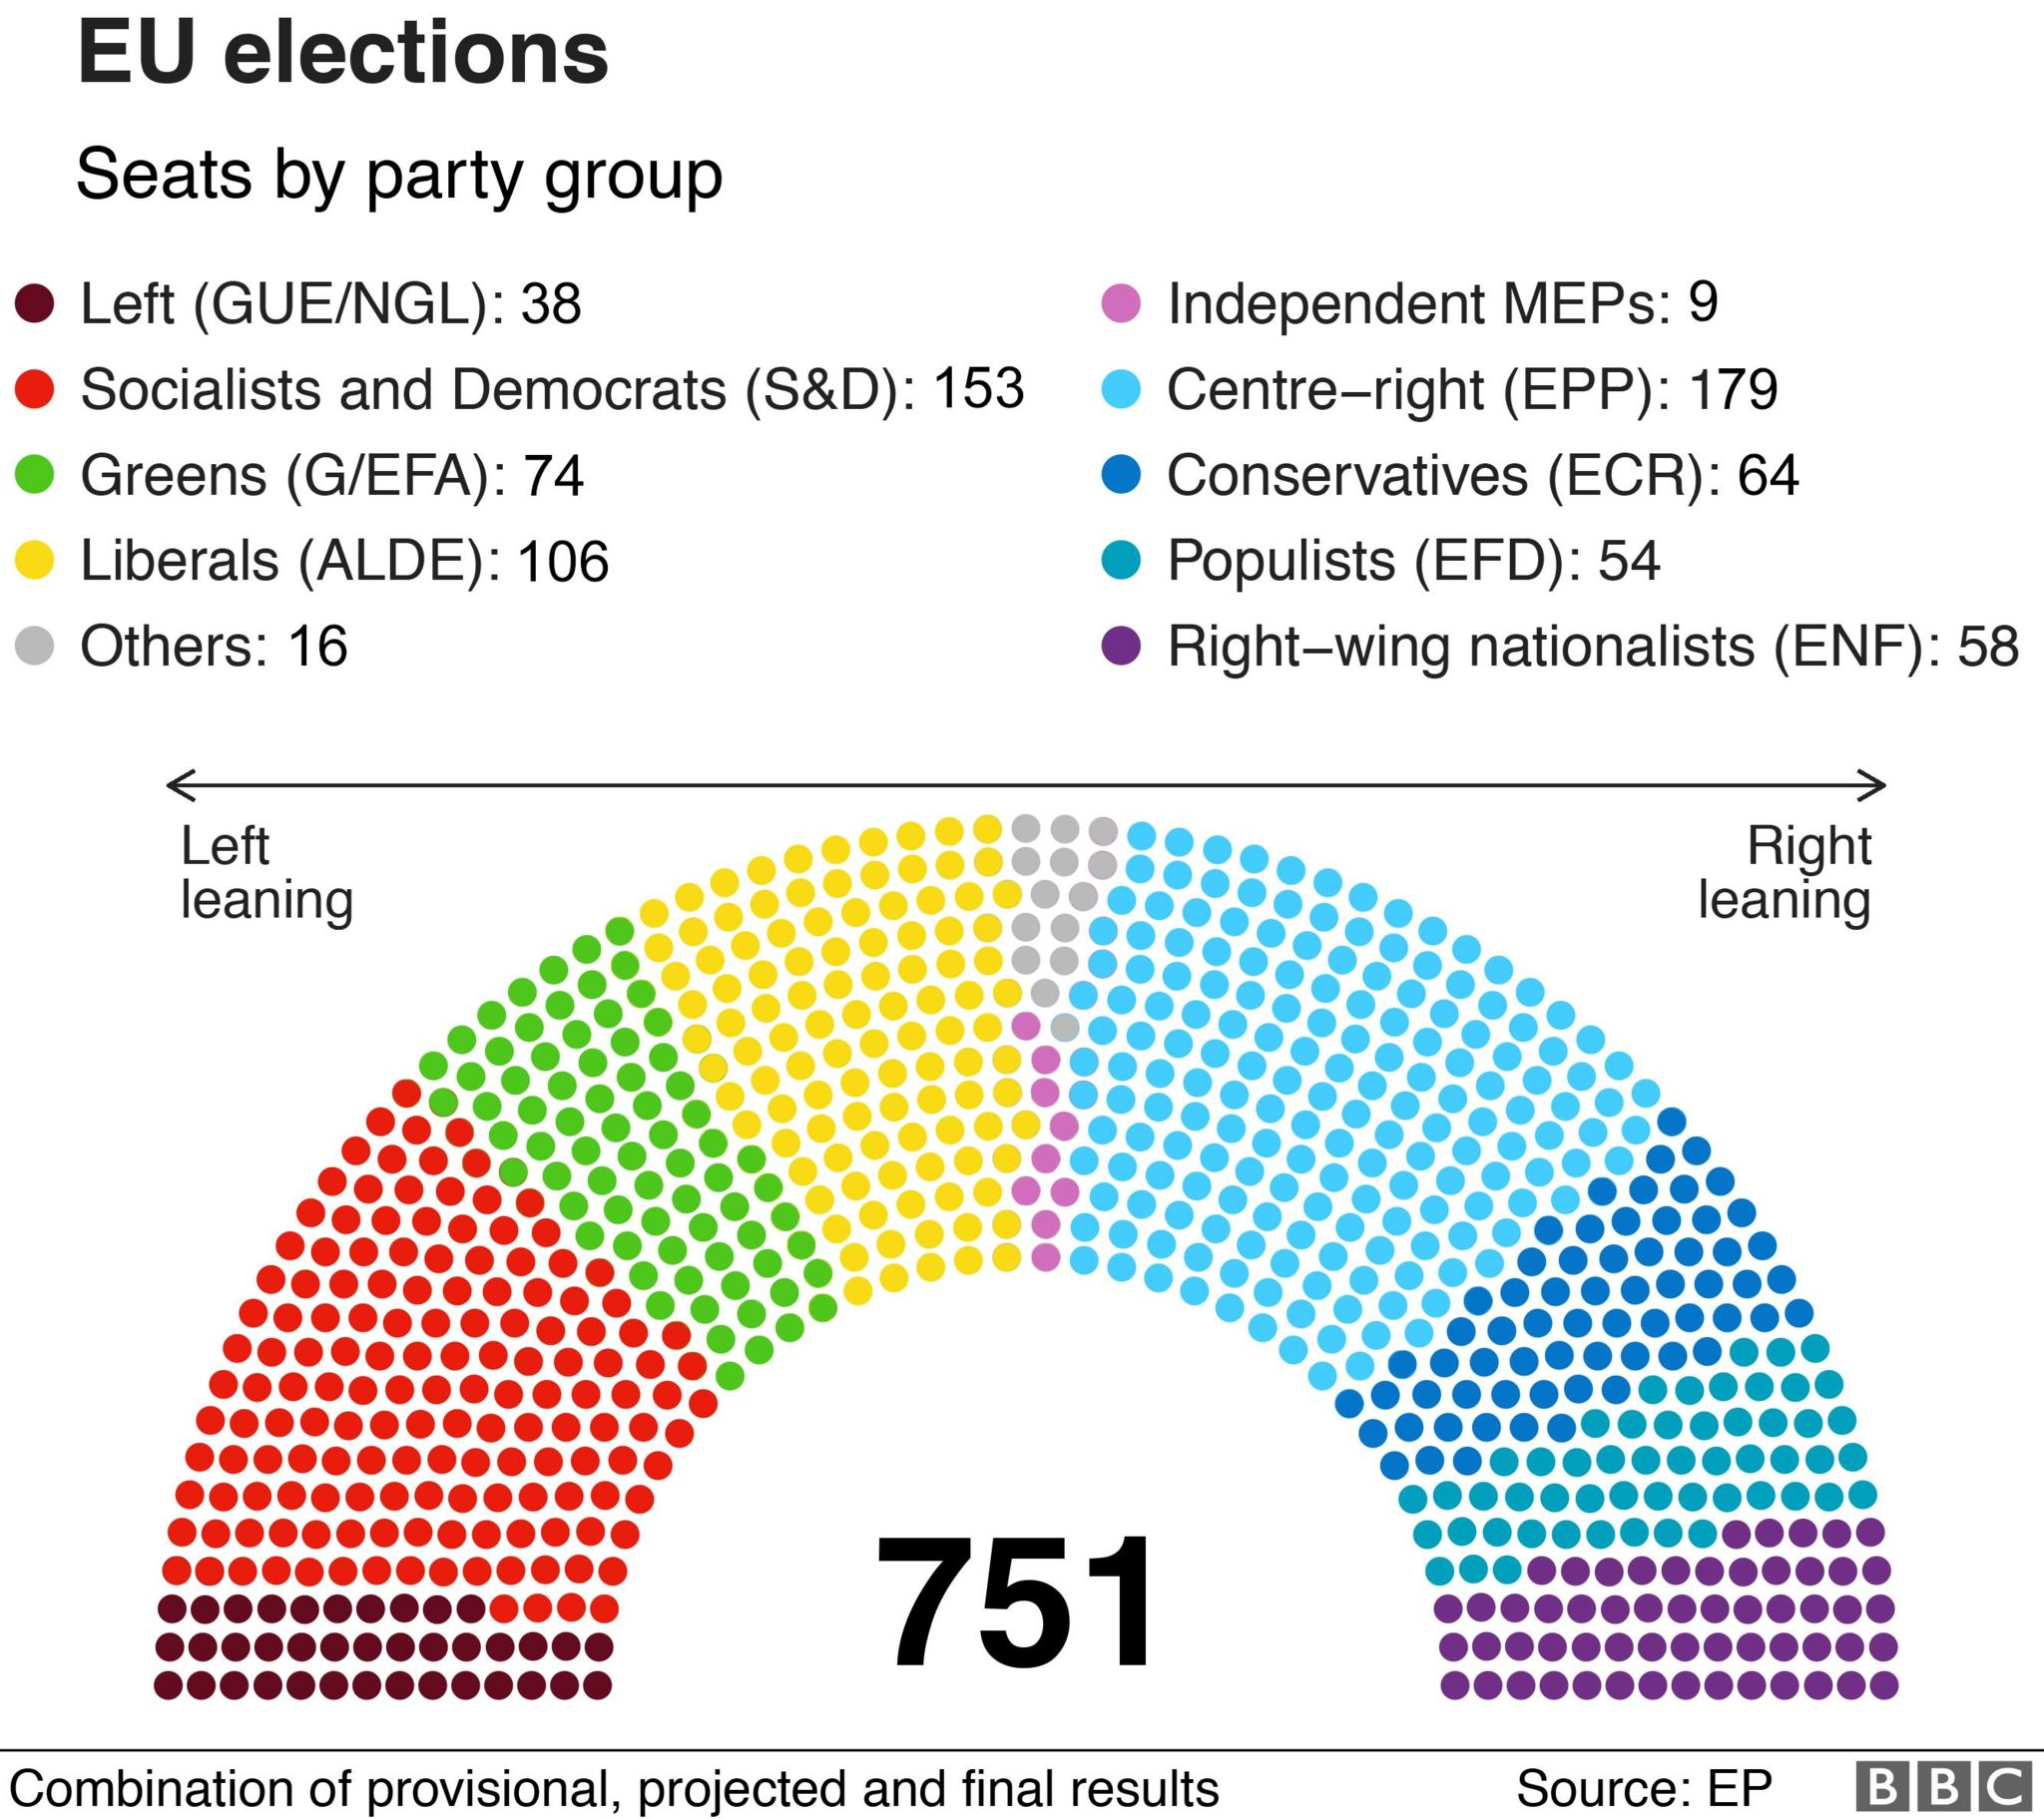 Results by party group. EPP largest with 179 out of 751